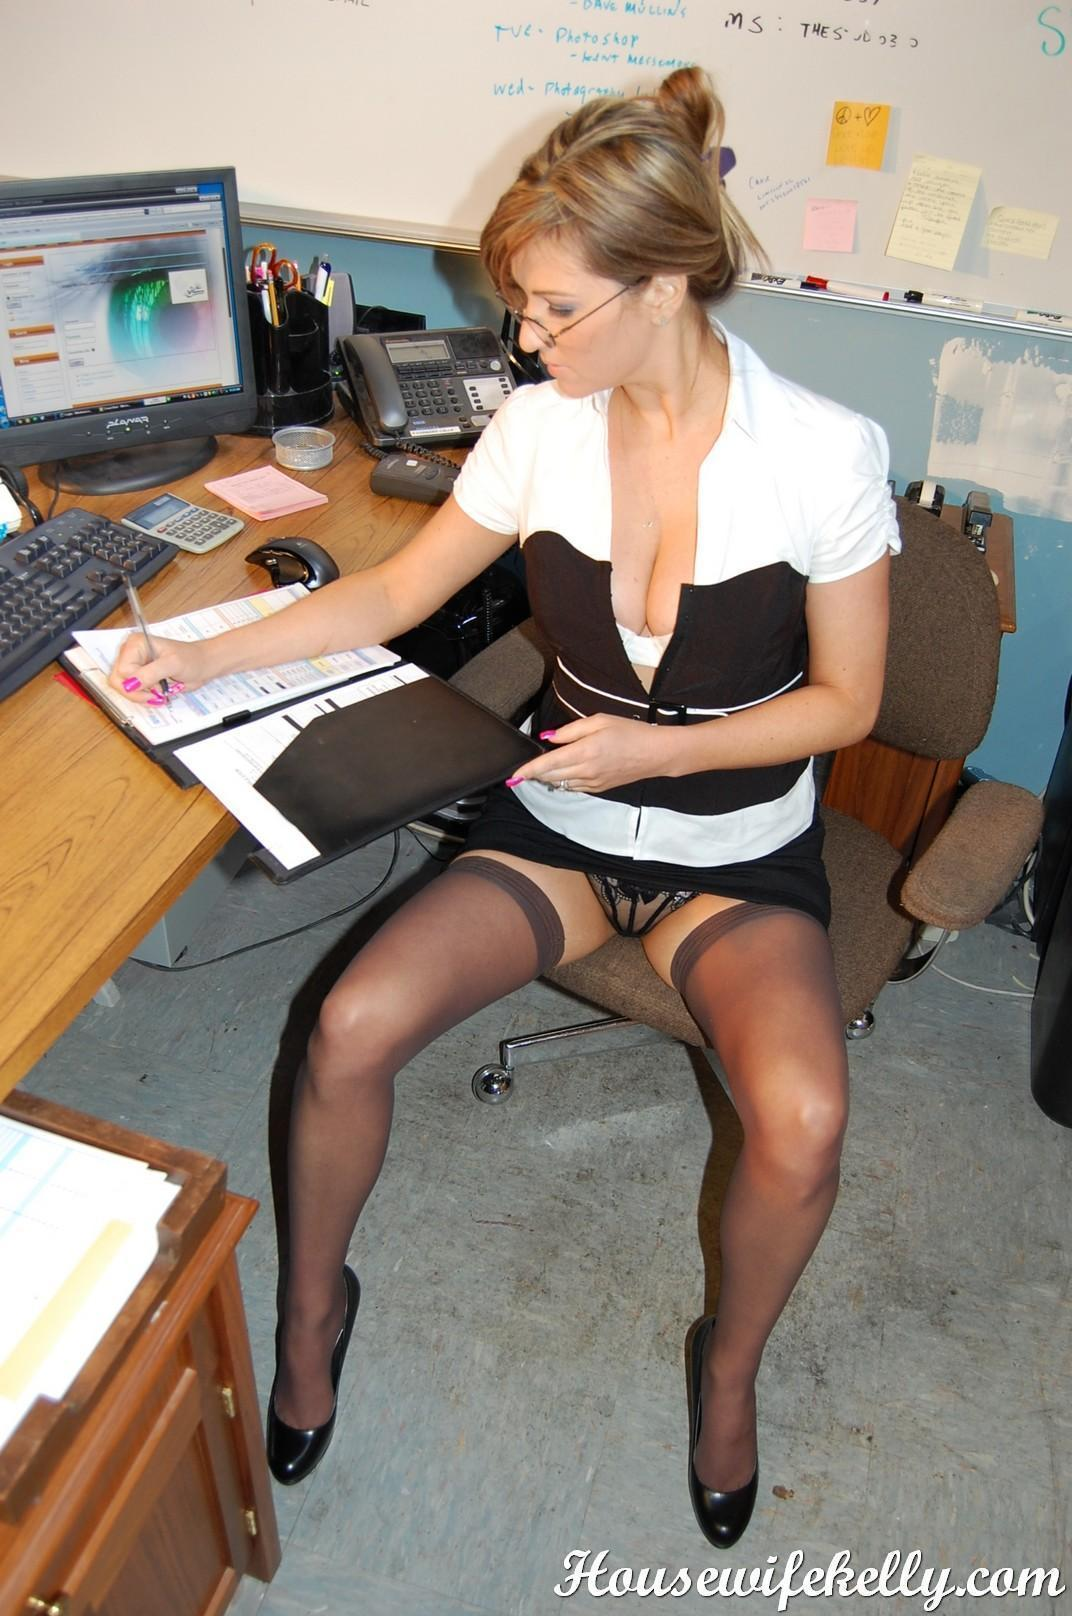 Sex nude xxx in office can